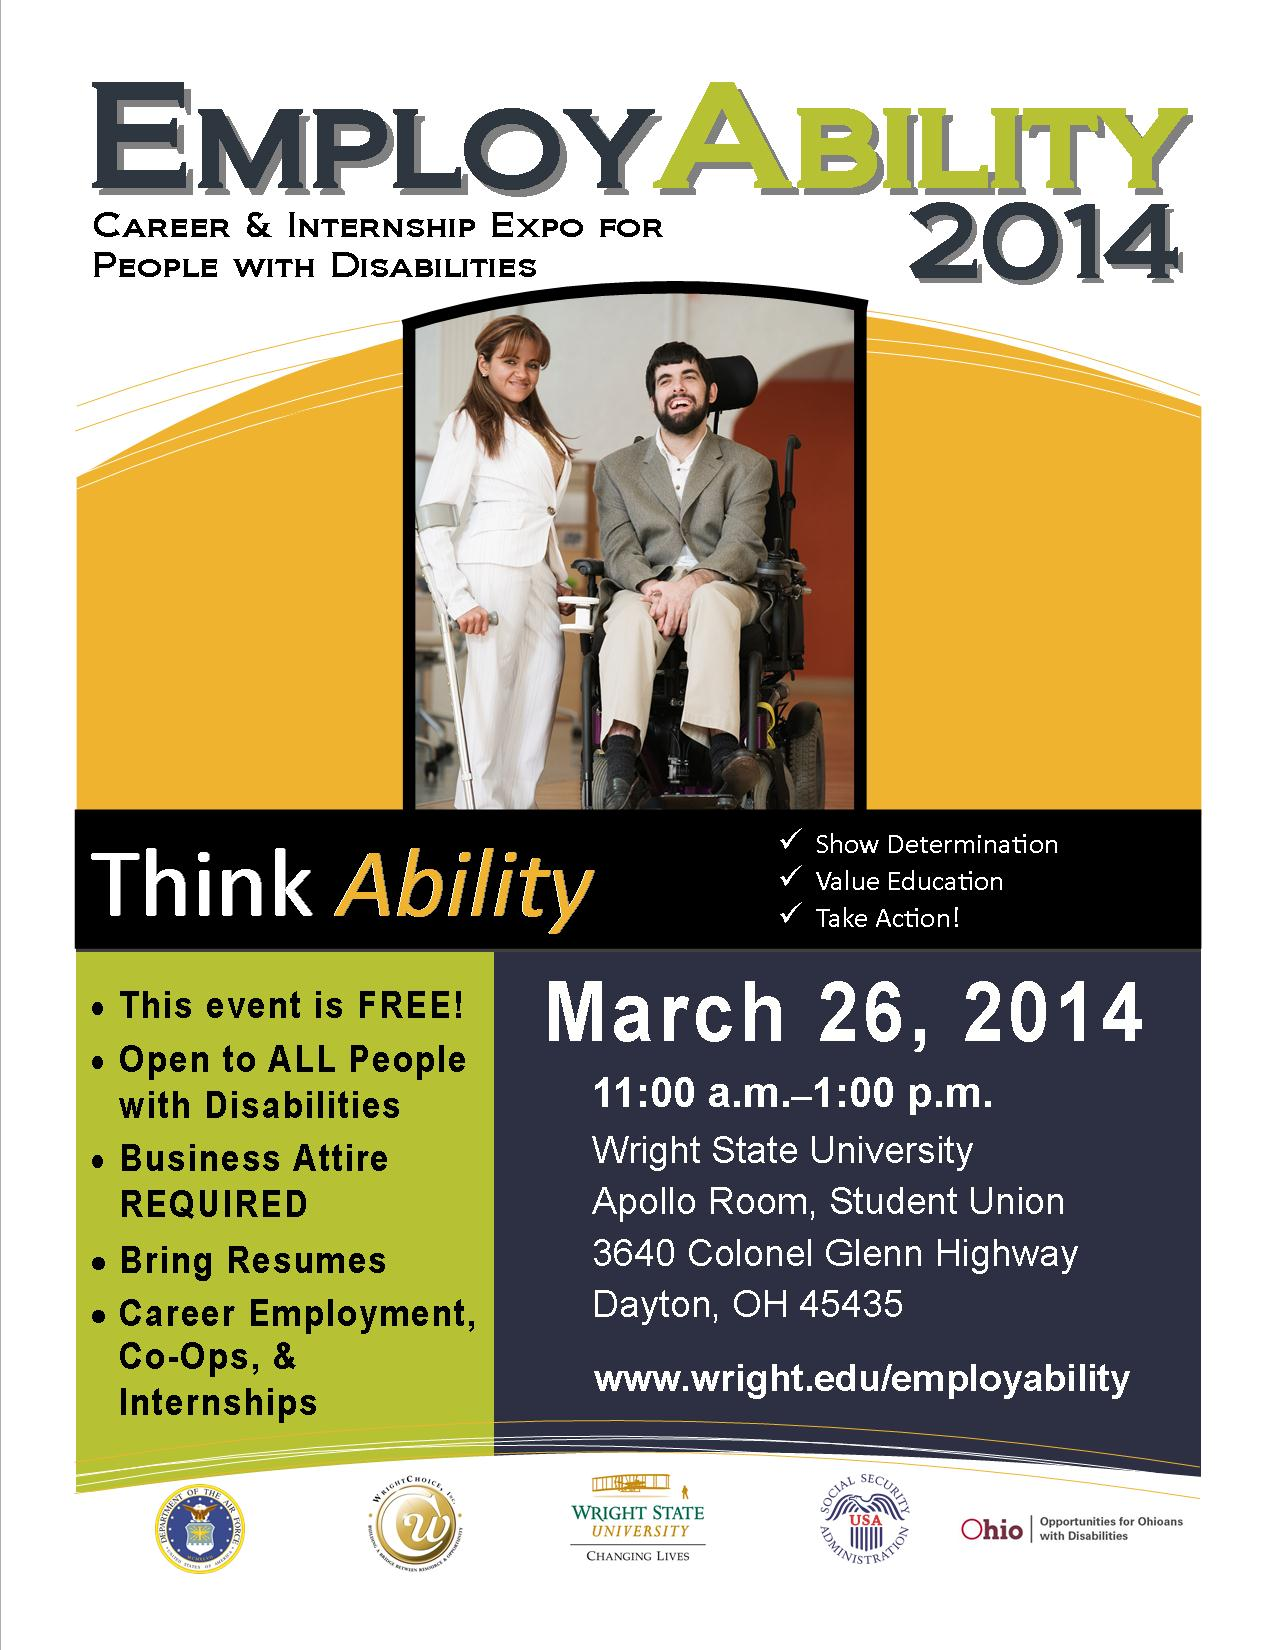 EmployAbility 2014 Flyer